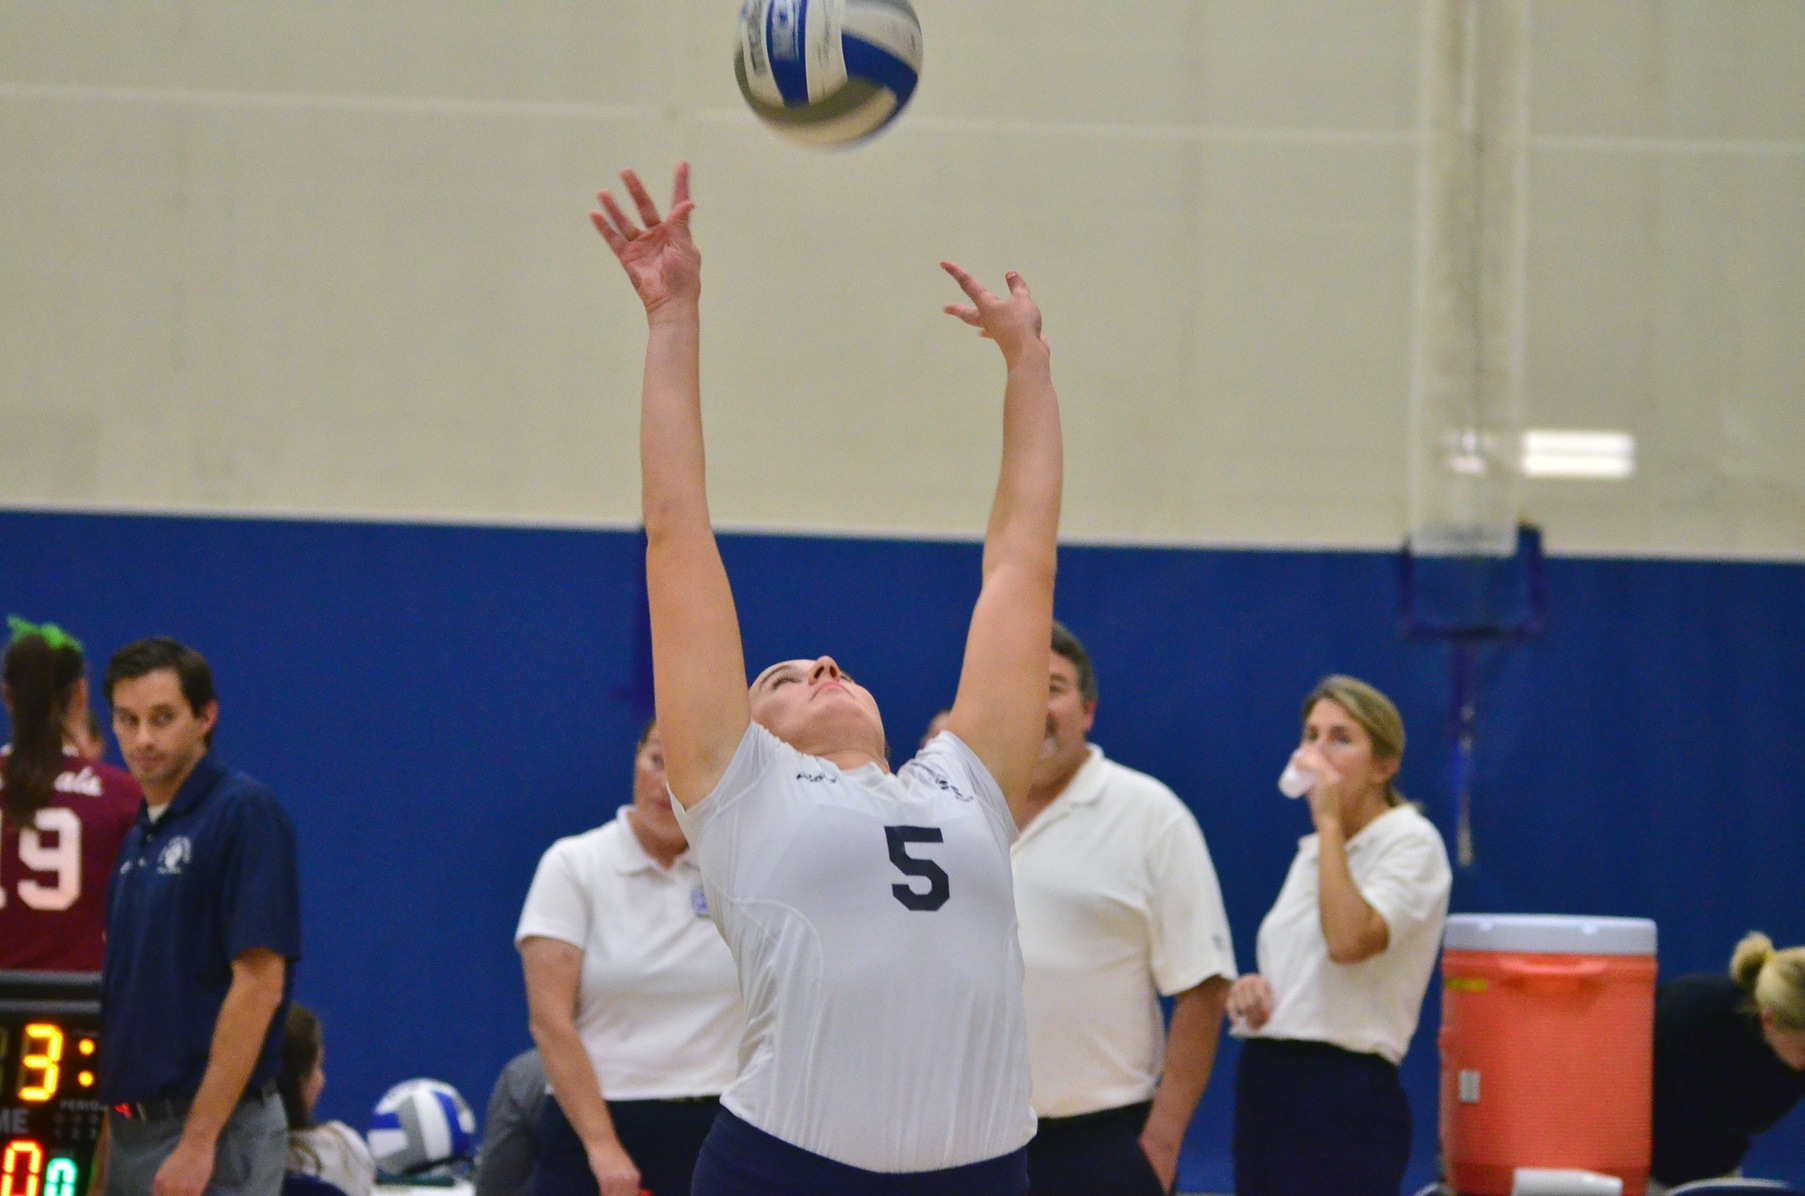 Lions Fall Twice on Second Day of Morrisville State Tournament